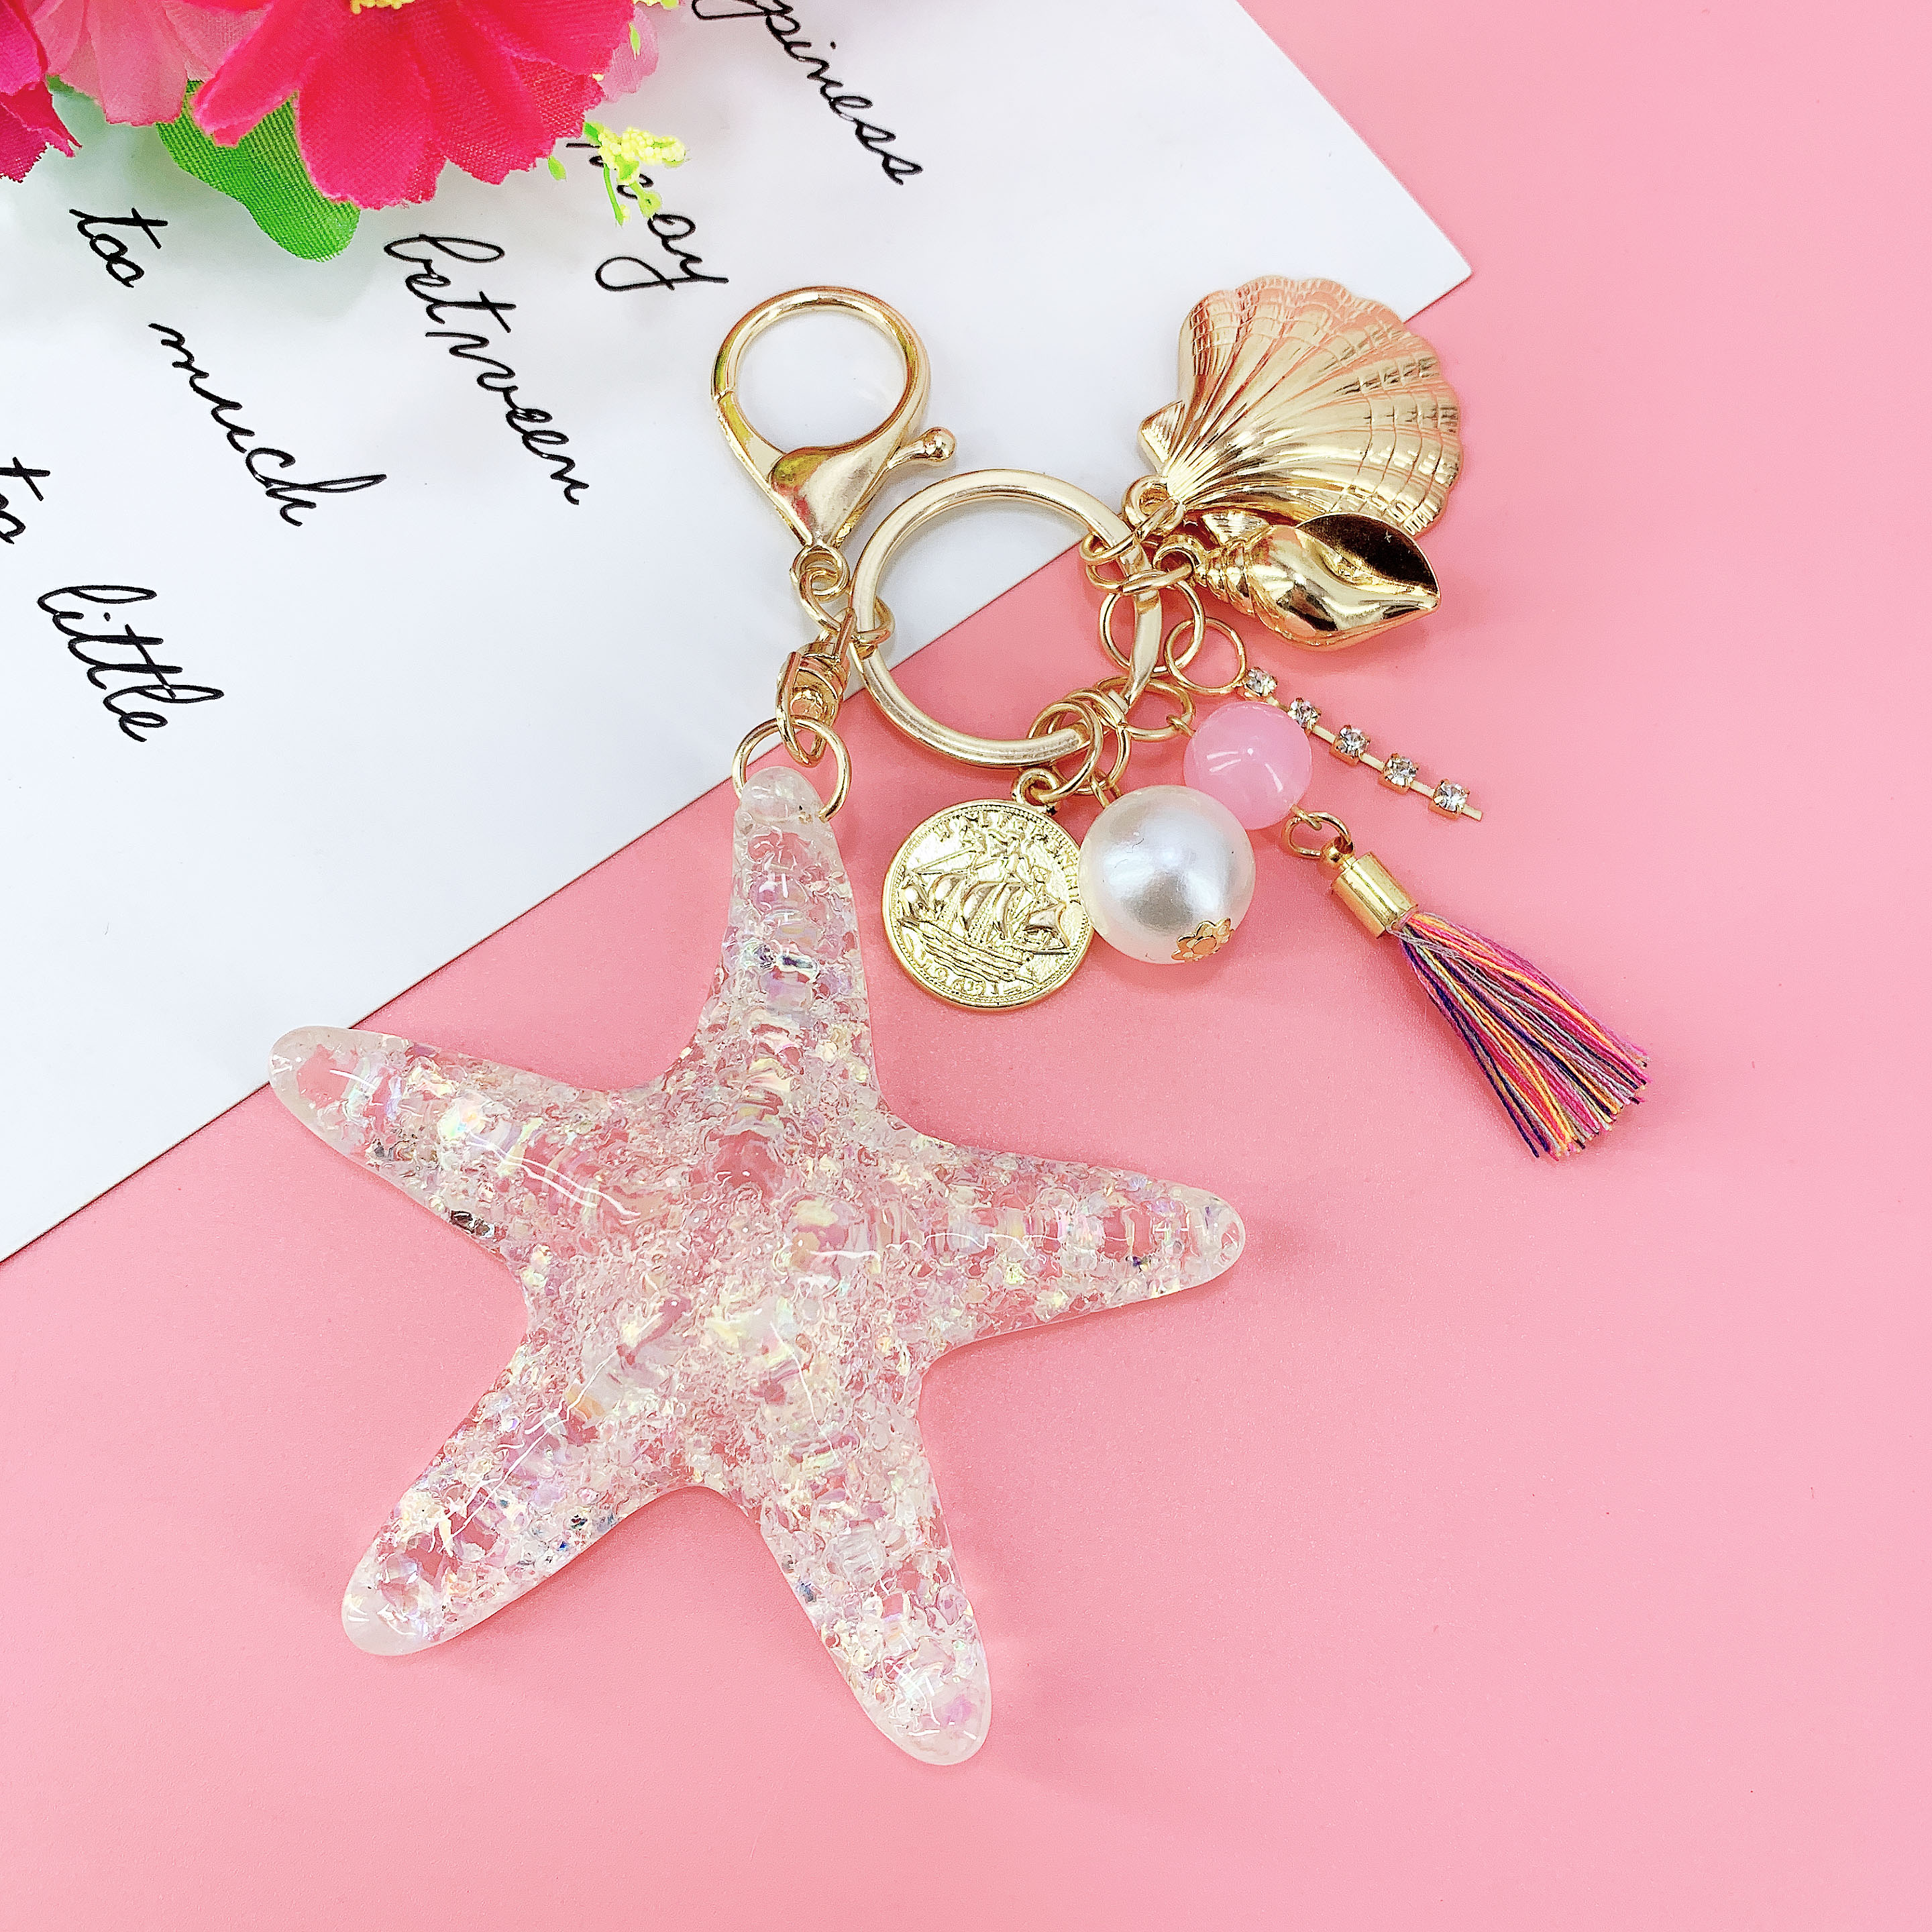 New Fantasy Cartoon Sea World Pearl Shell Starfish Keychain Pentagram Crystal Key chain Ladies Bag Car Key Alloy Pendant Jewelry(China)